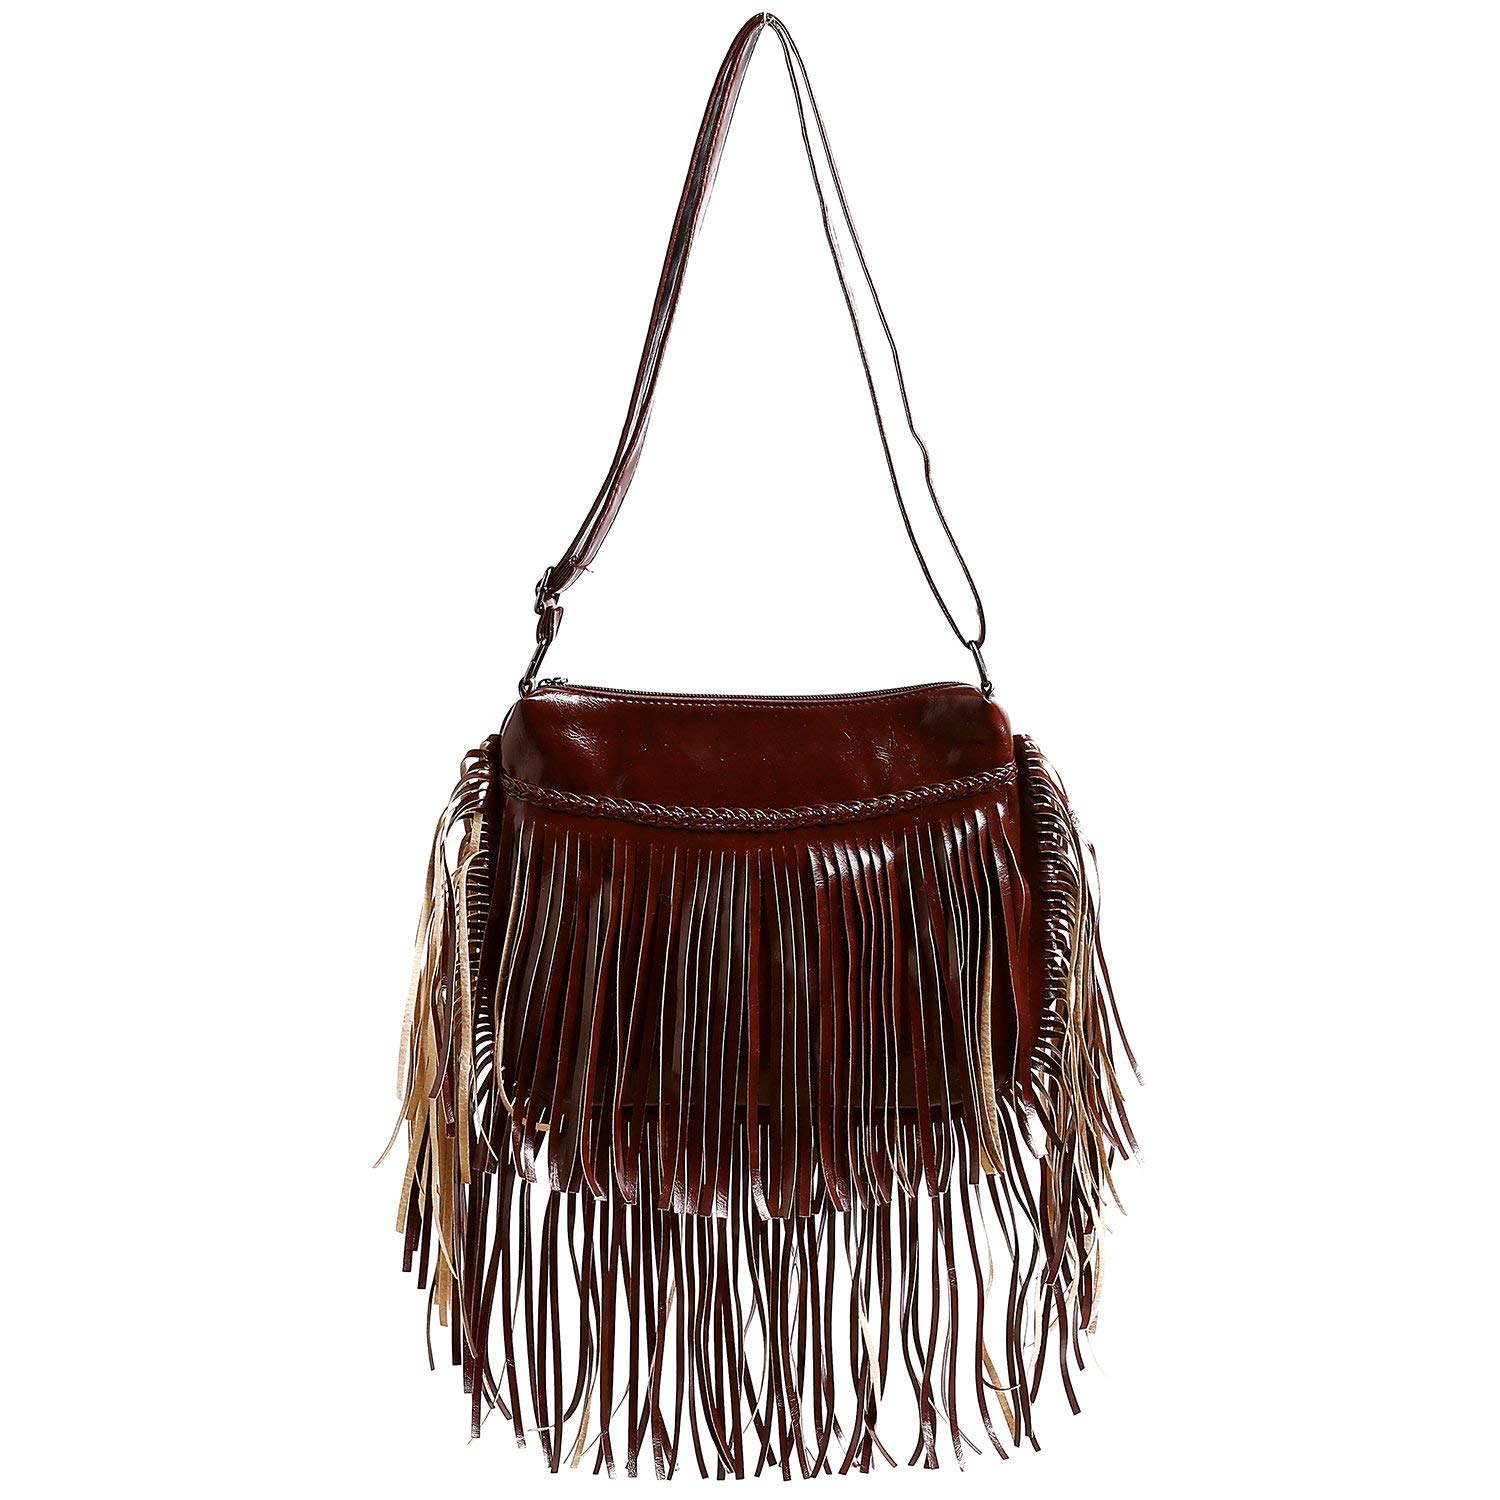 eb6c13153771 Get Quotations · BEKILOLE Fringe Purse Fashion Women Leather Shoulder Bag  Waterproof Crossbody Purse Travel Messenger Bag Fringe Bag